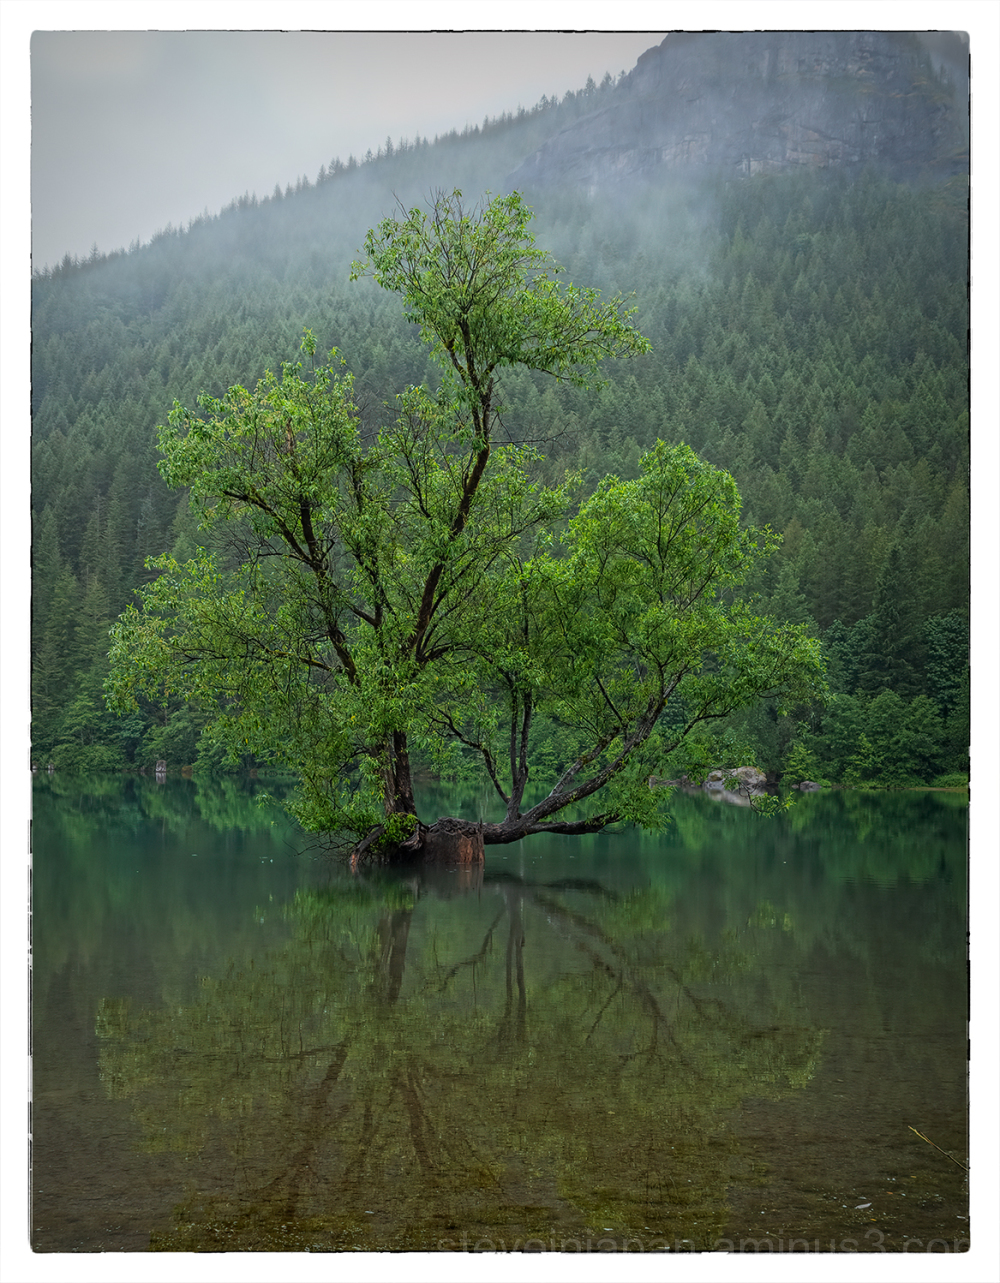 A tree reflected in Rattlesnake Lake.